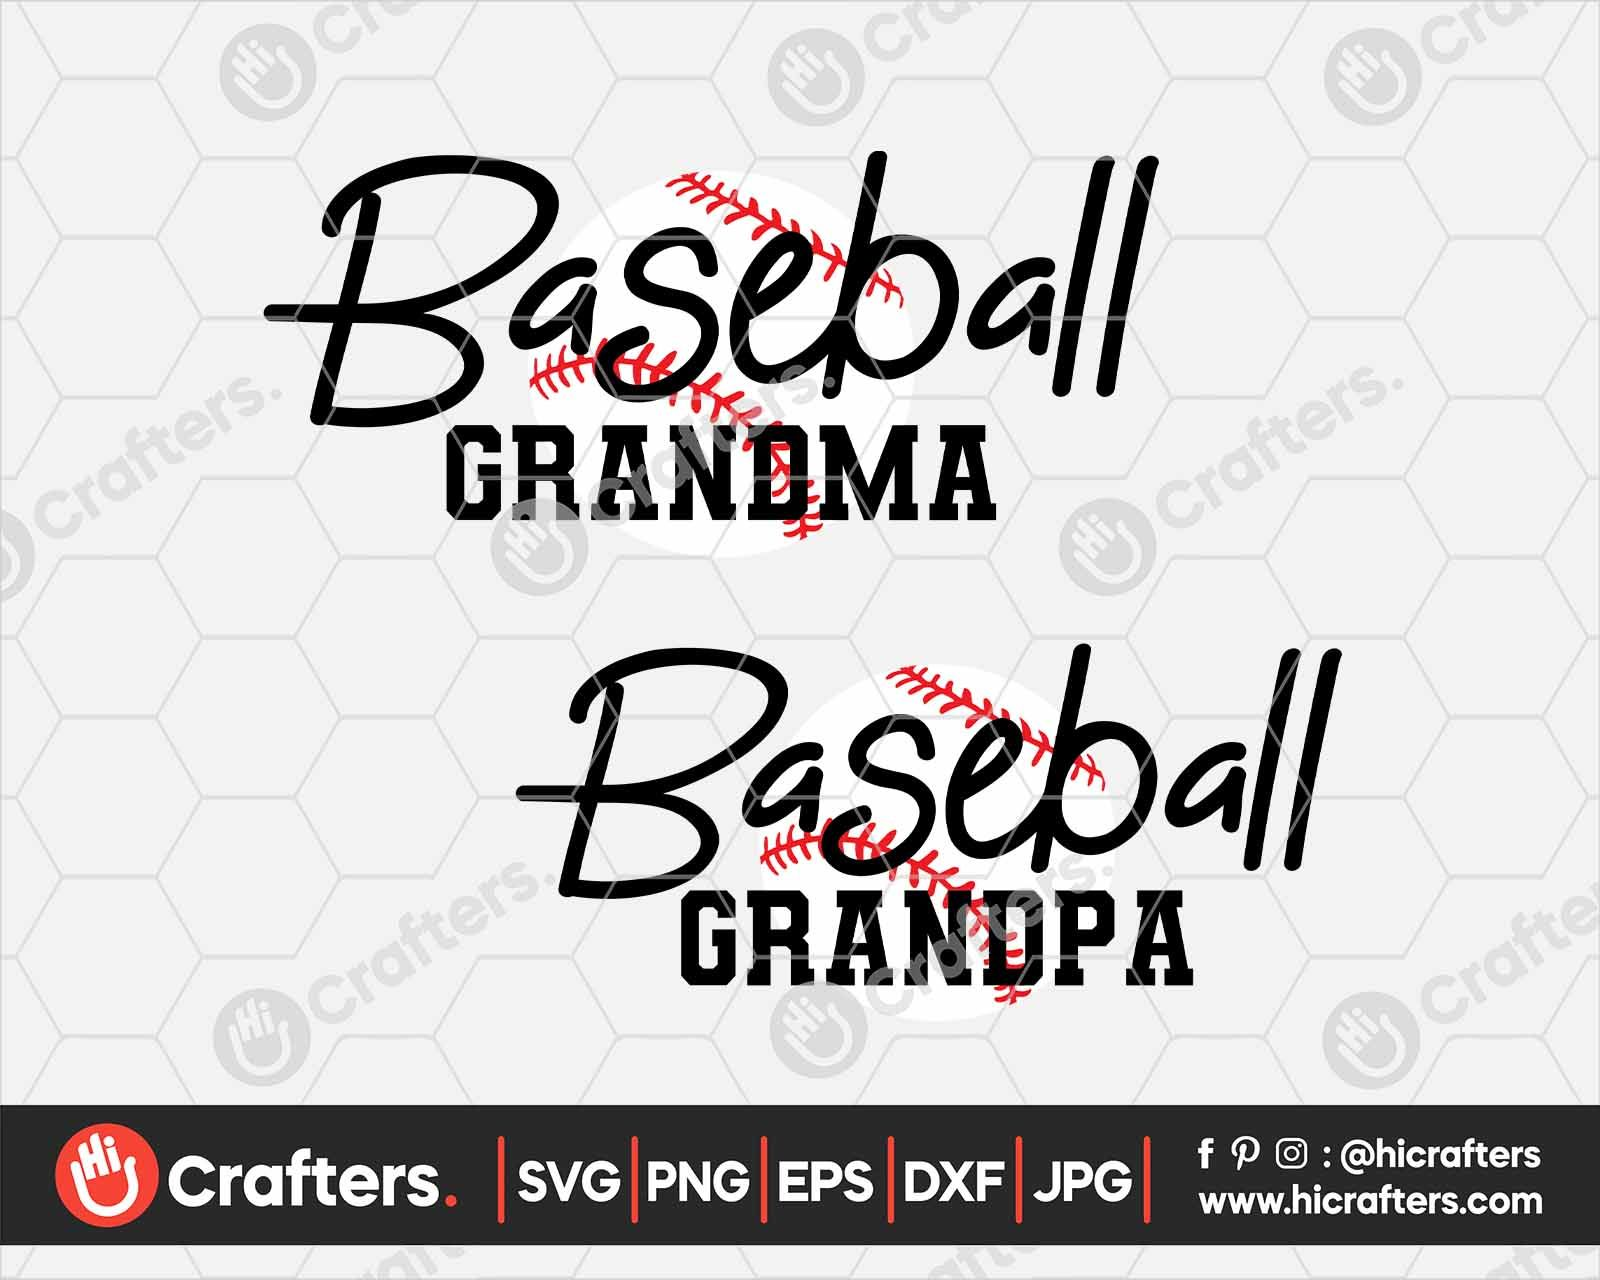 Baseball Grandma SVG, Baseball Grandpa SVG Hi Crafters